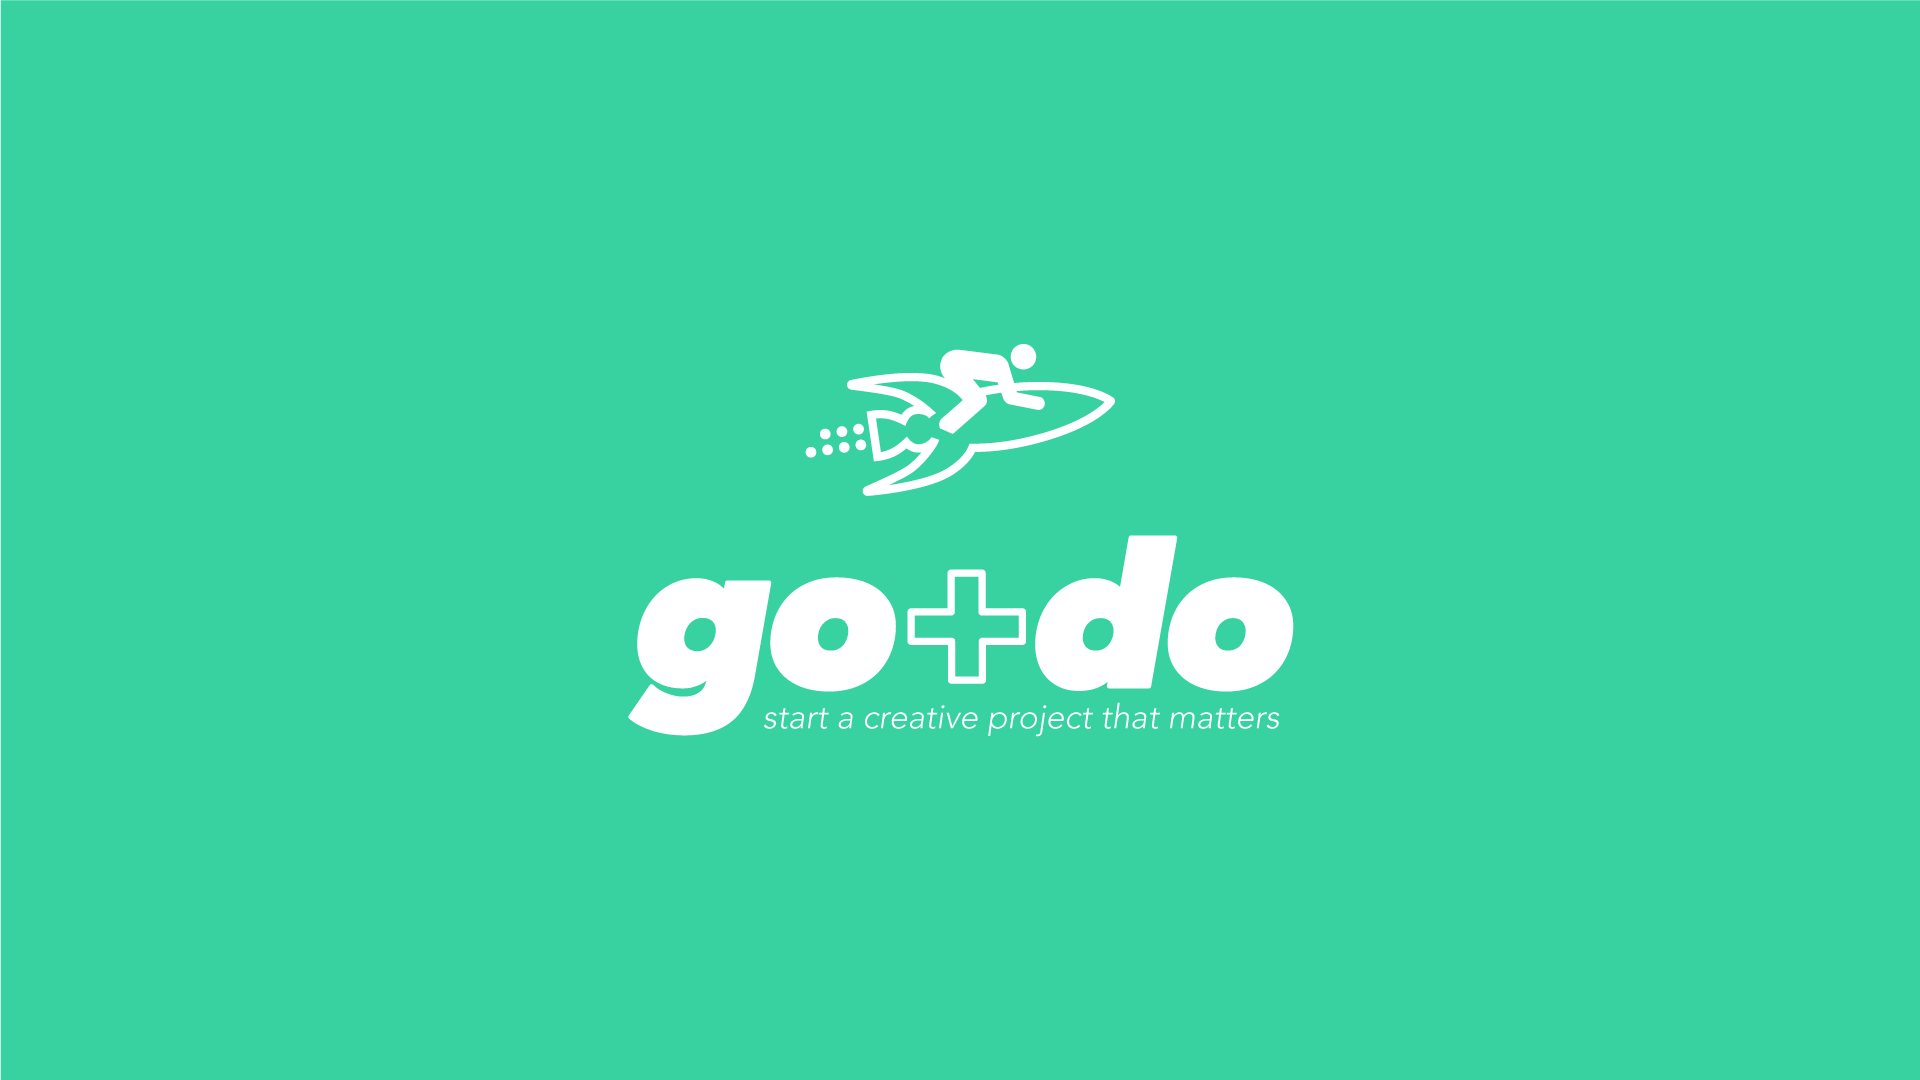 GO+DO: Start a creative project that matters